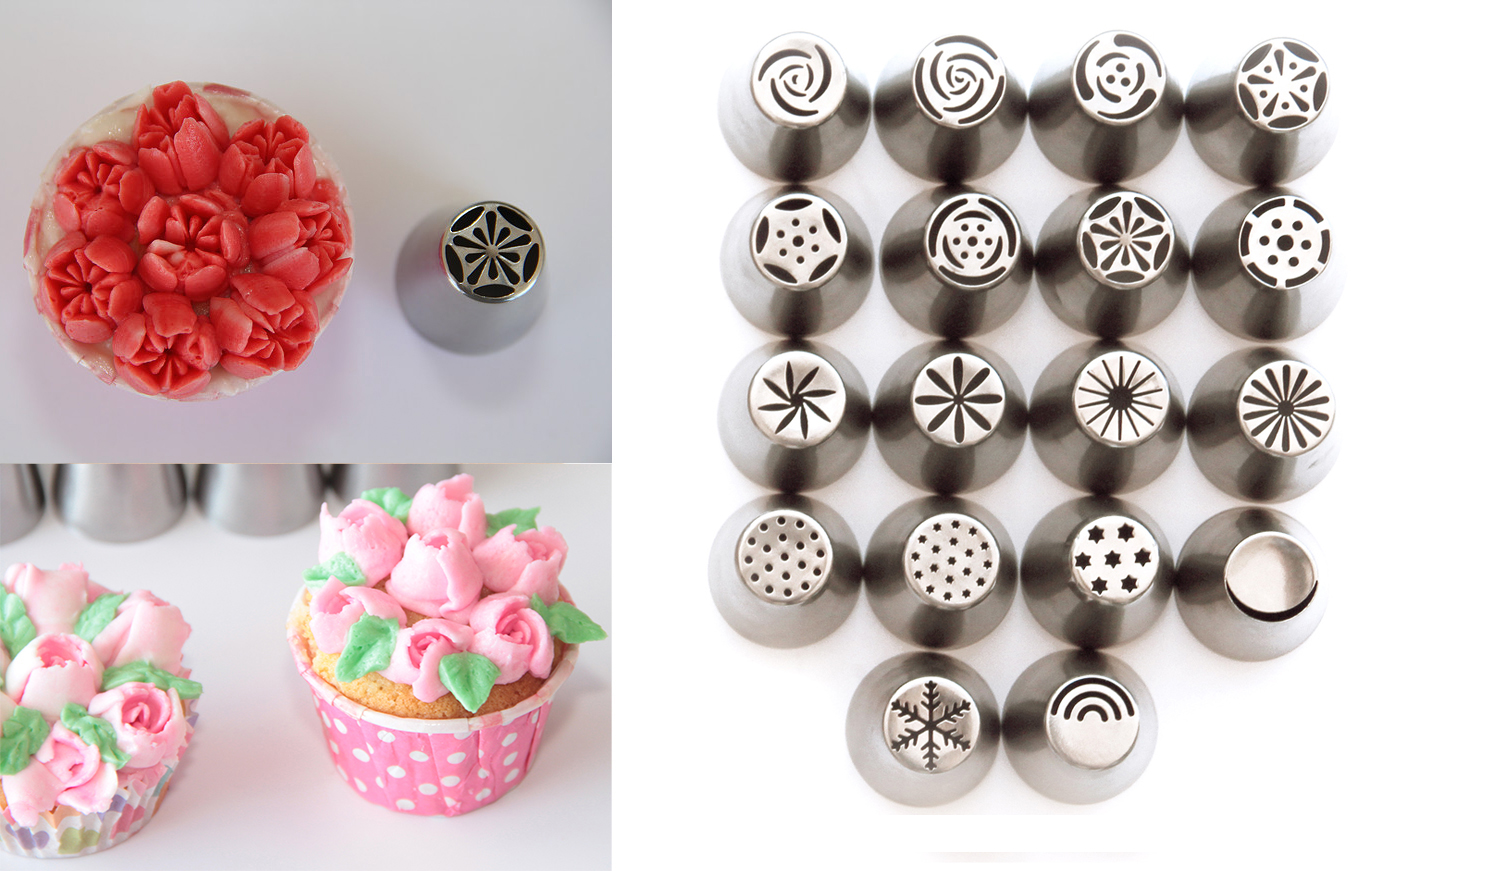 2016 best gadgets to decorate cake and cupcakes russian flower piping tips crownbake